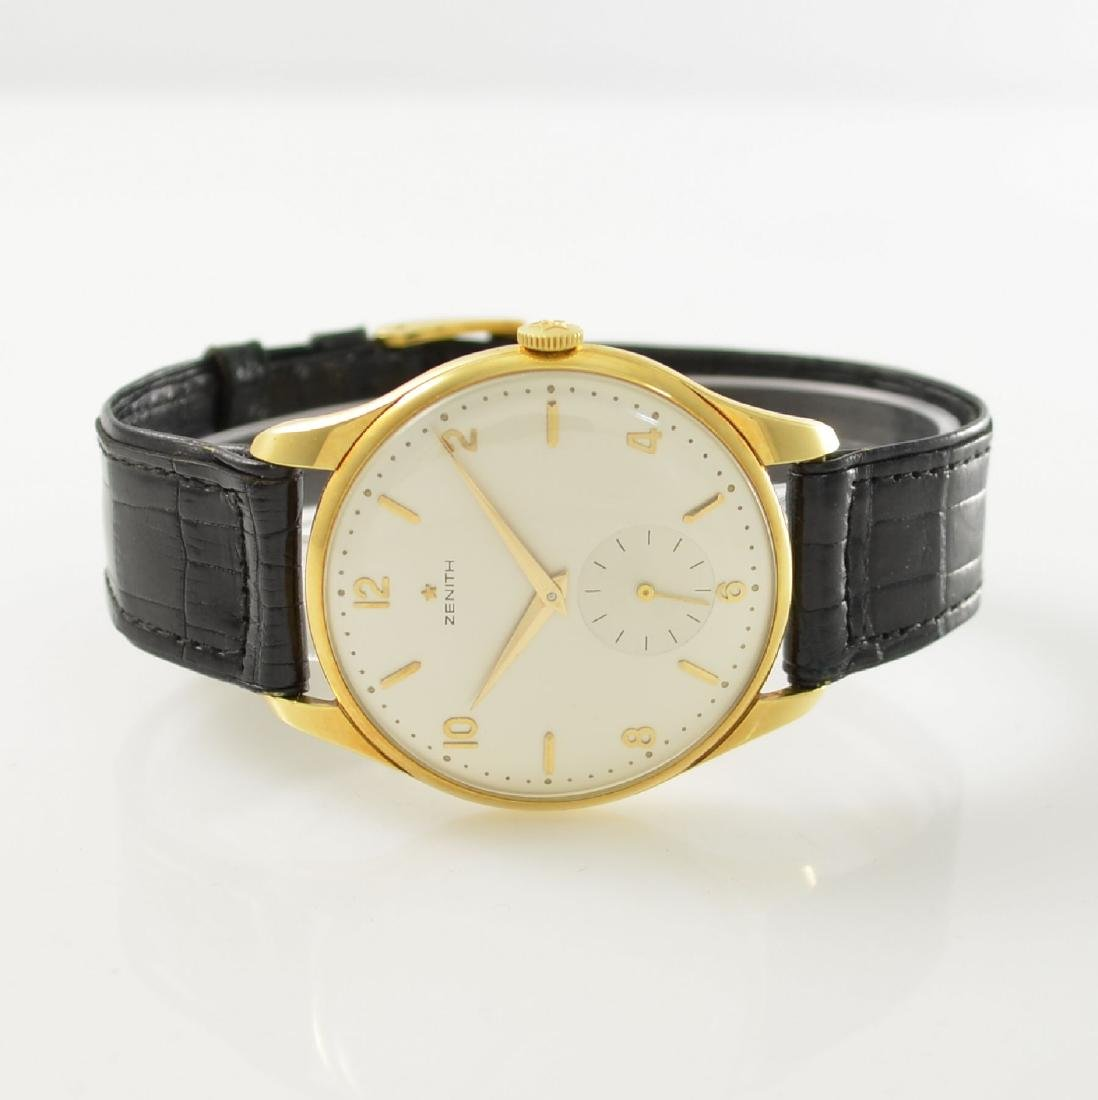 ZENITH oversized 18k yellow gold gents wristwatch